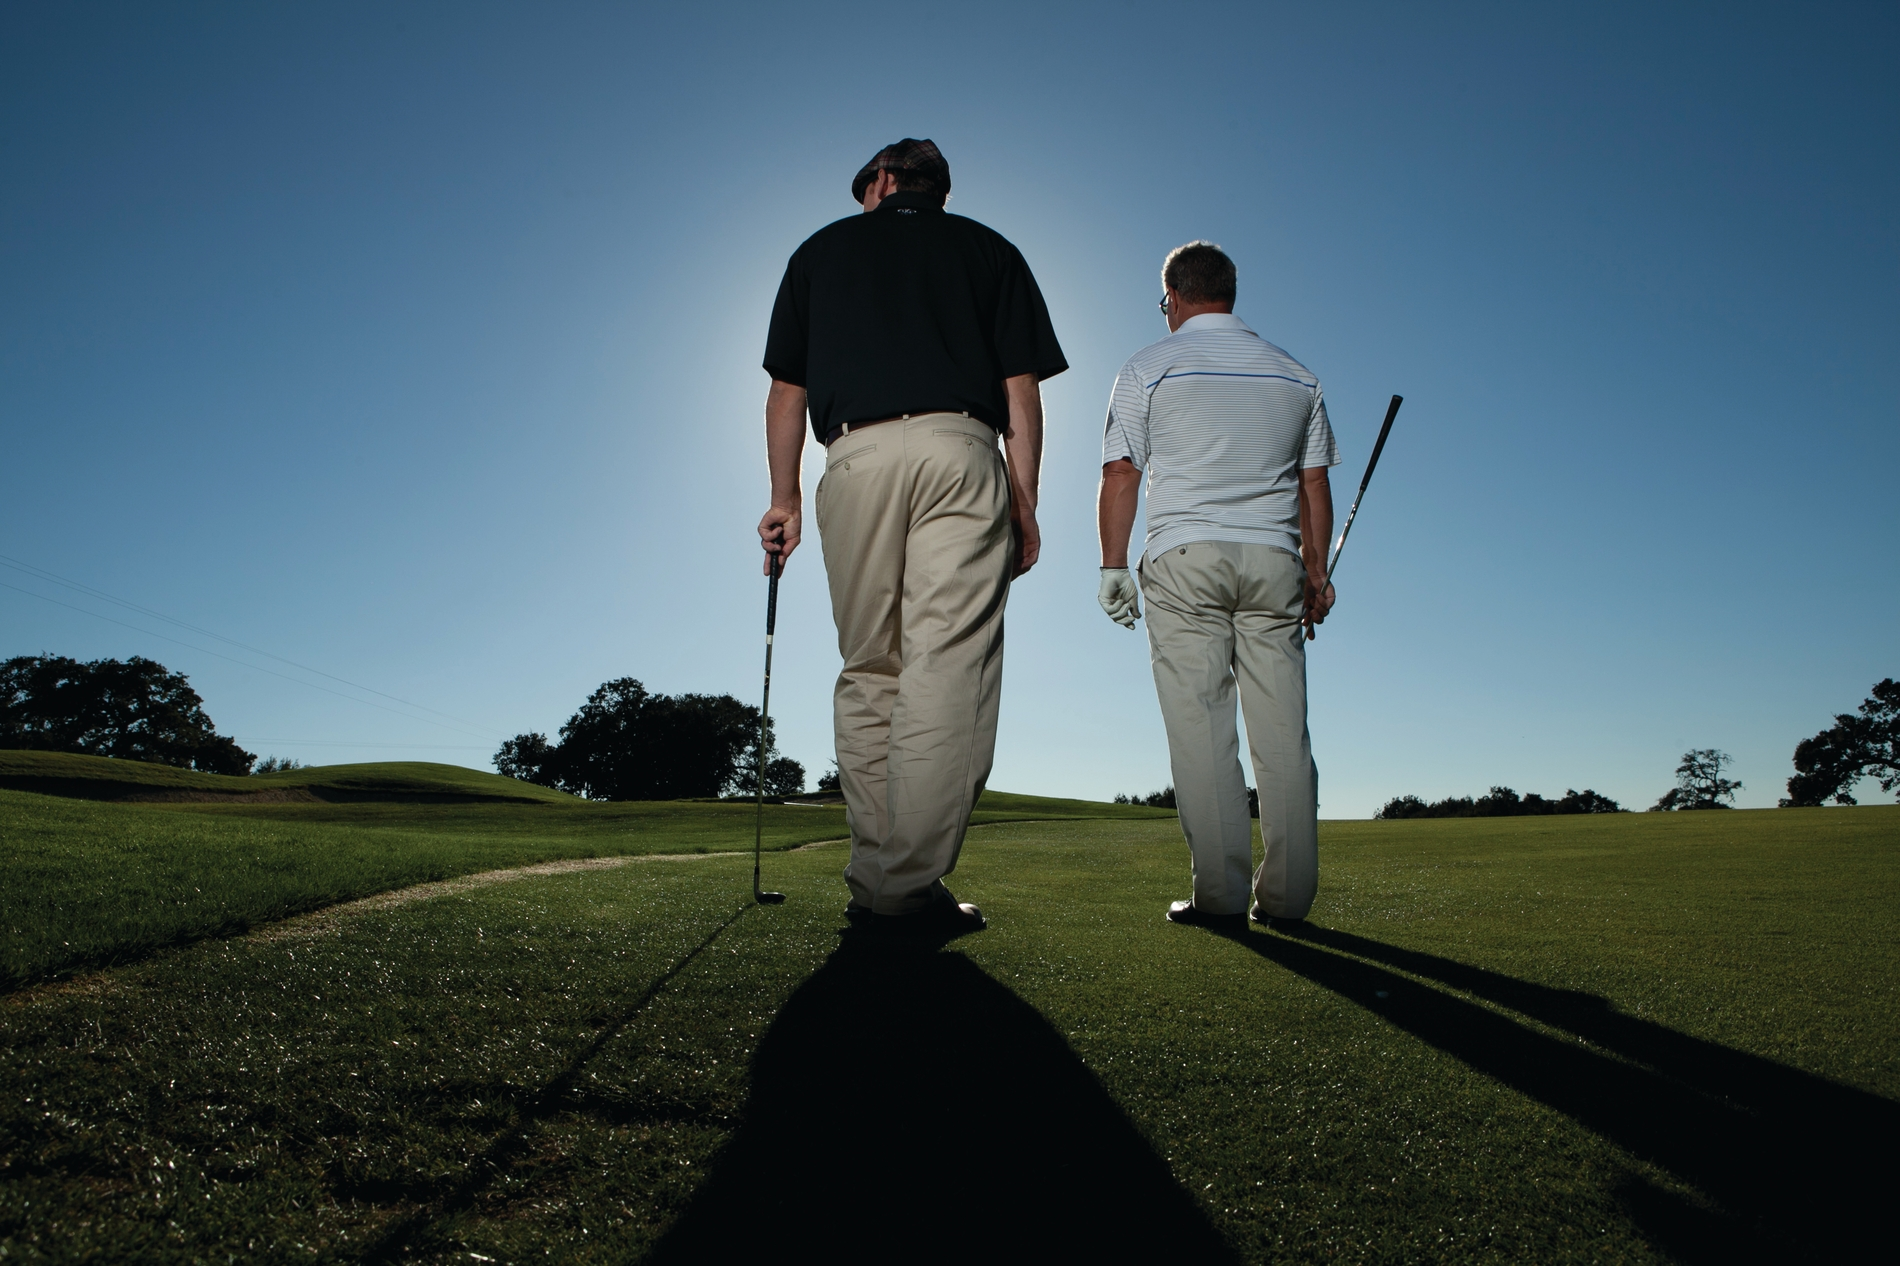 Two men standing on the fairway playing golf.  Blue sky and sunn